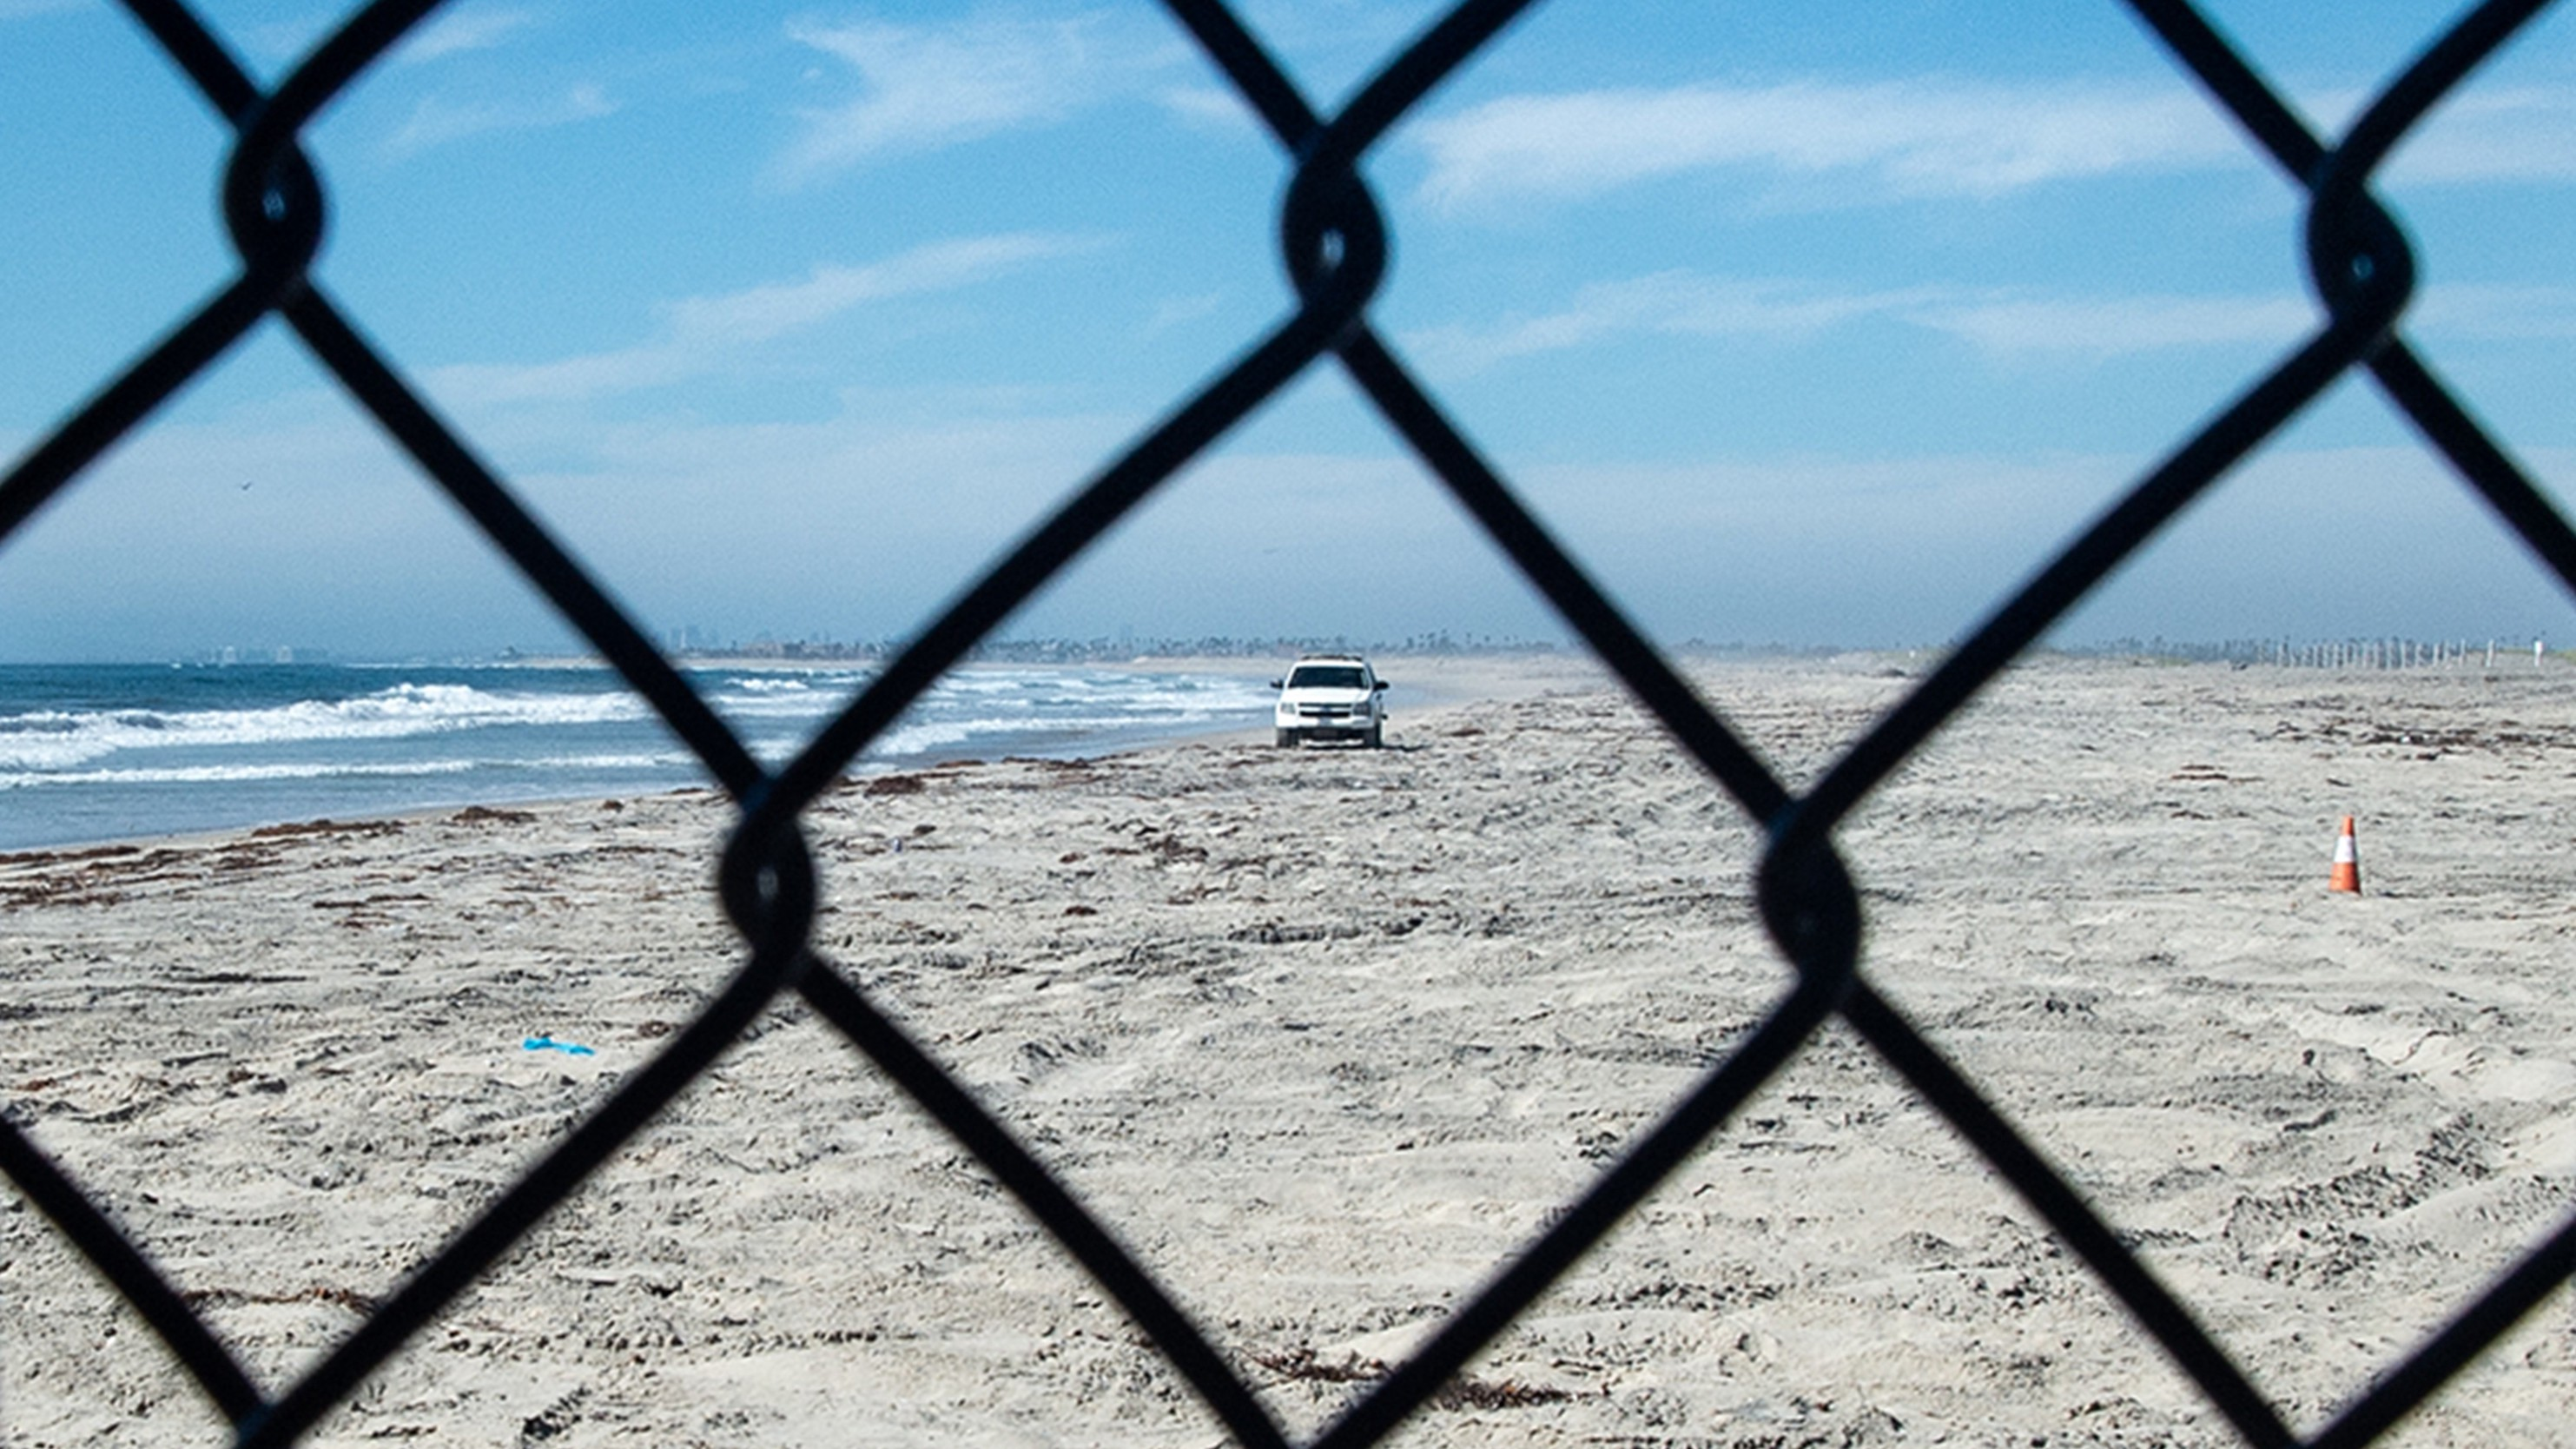 The United States seen through fencing at the border of the U.S. and Tijuana, Mexico. A Border Patrol vehicle can be seen through the chain-link fence. Photo by Robert Stribley.